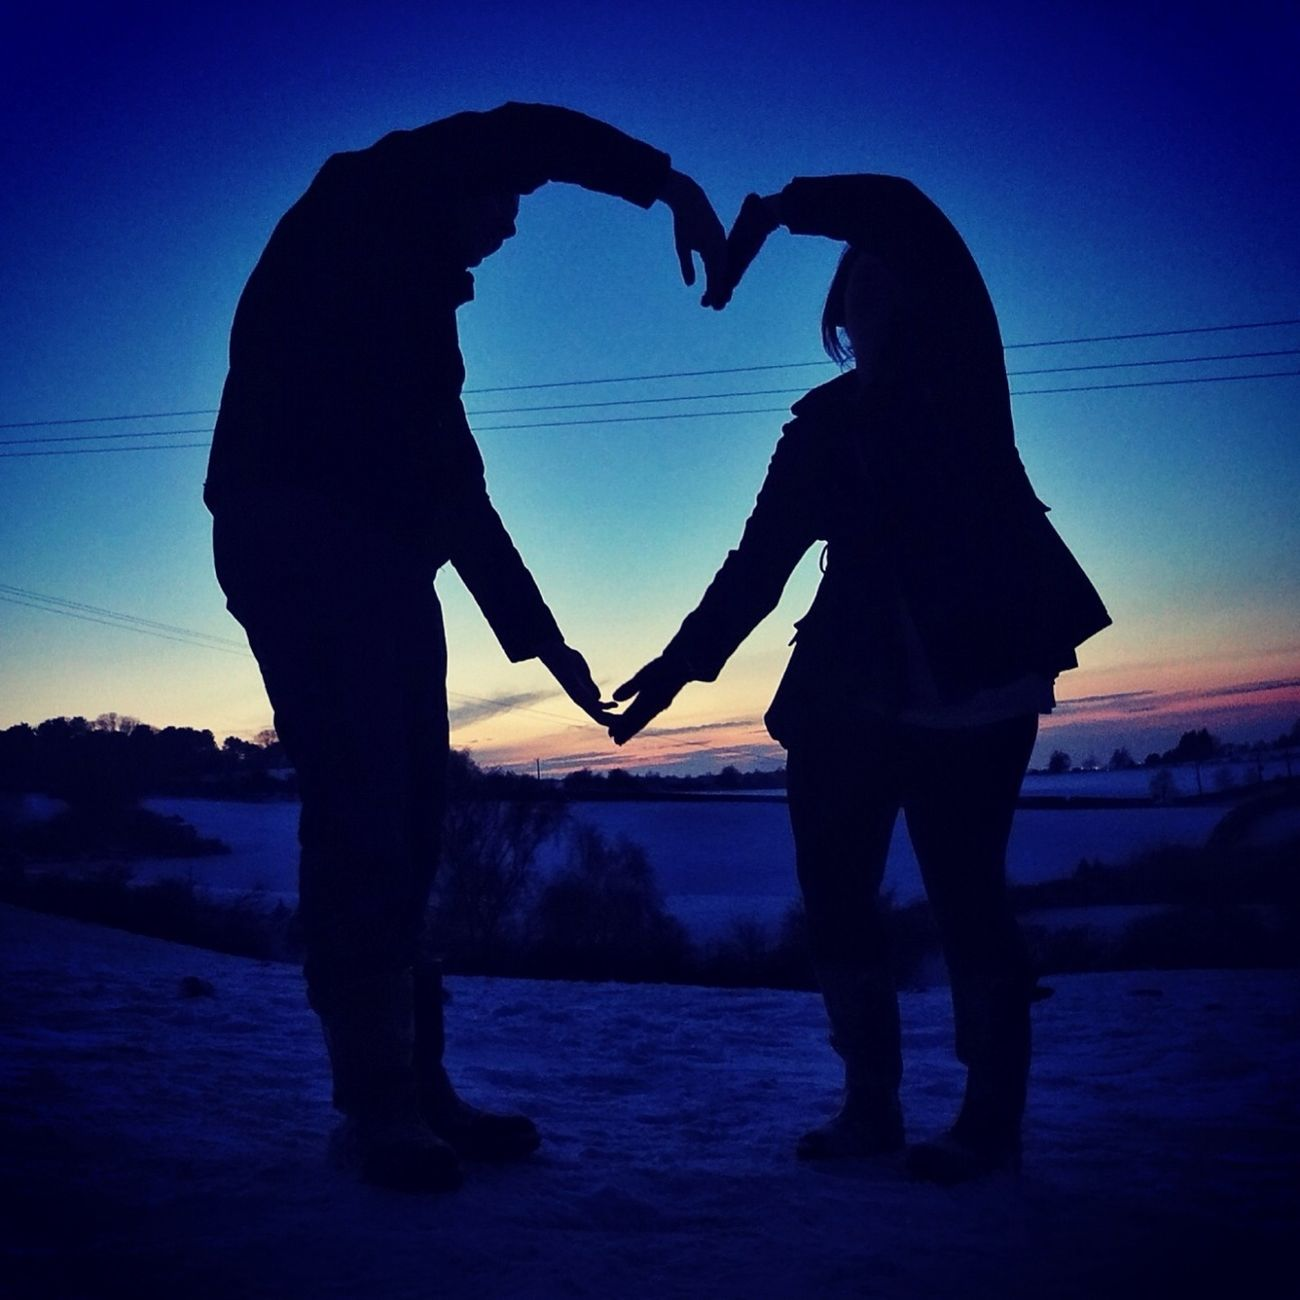 #sunset #heart #silhouette #snow #pretty #iseehearts #cute